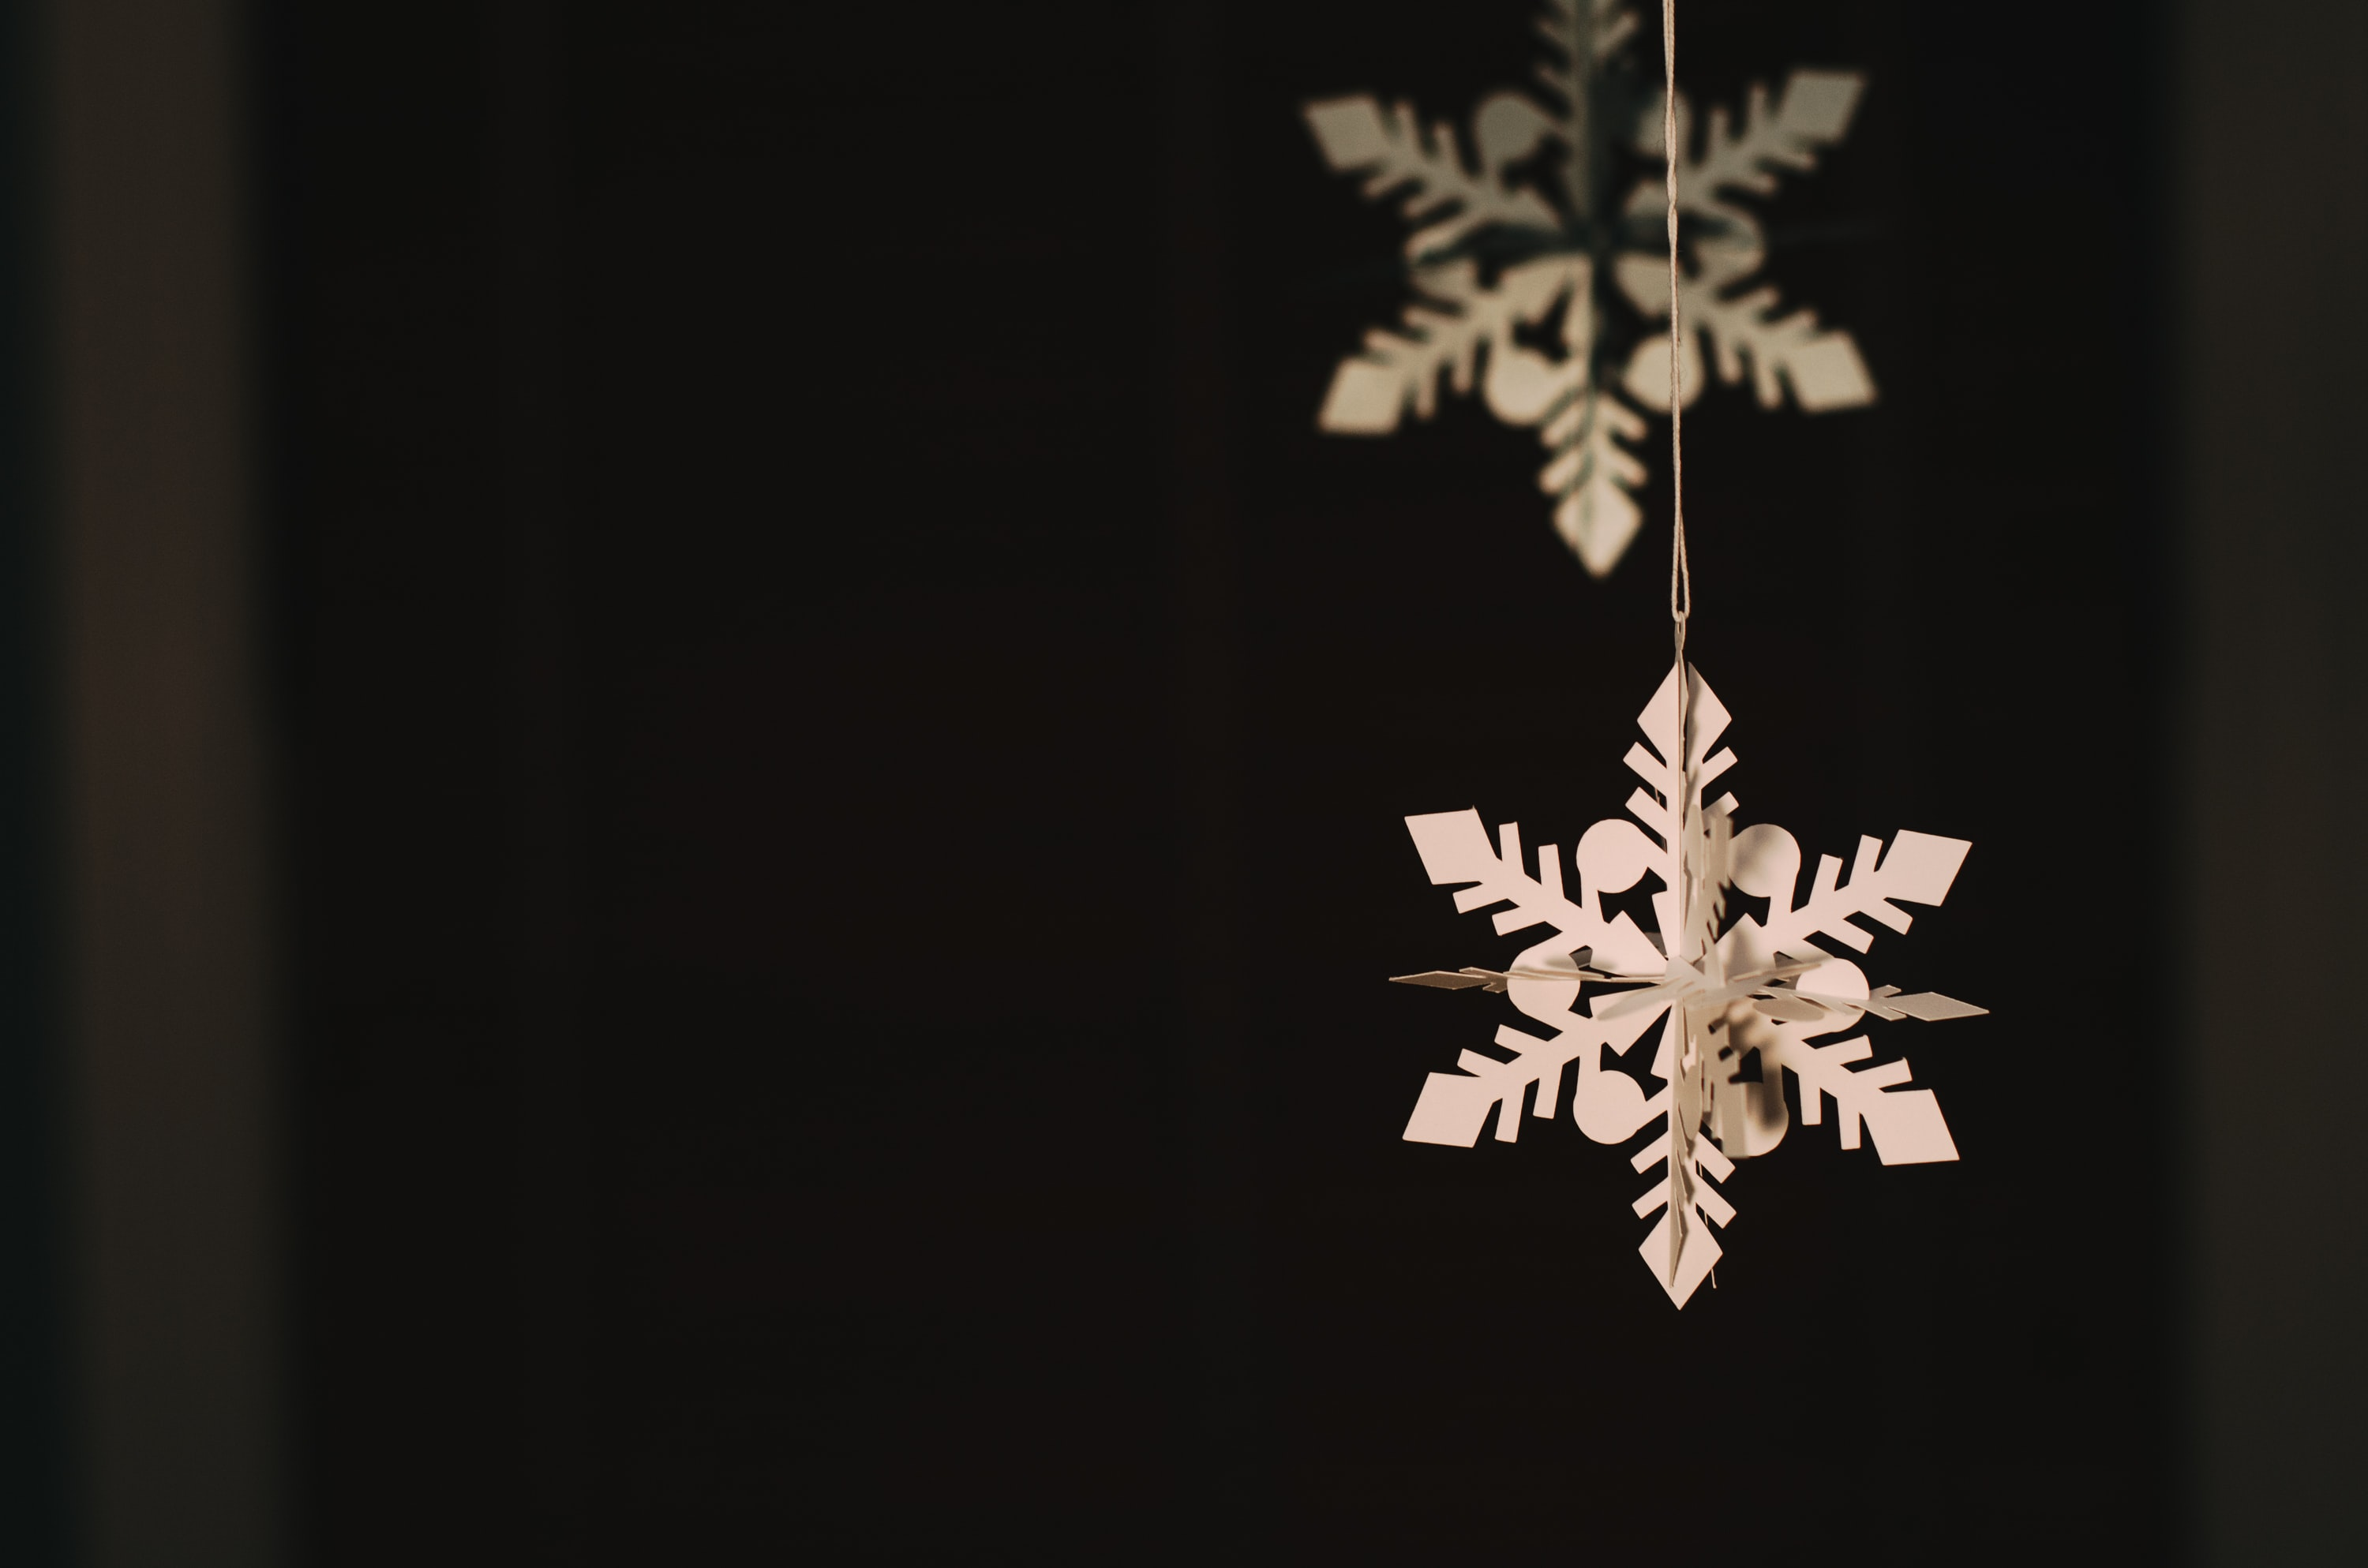 Macro of Christmas snowflake paper decorations hanging in front of black background, Brookline